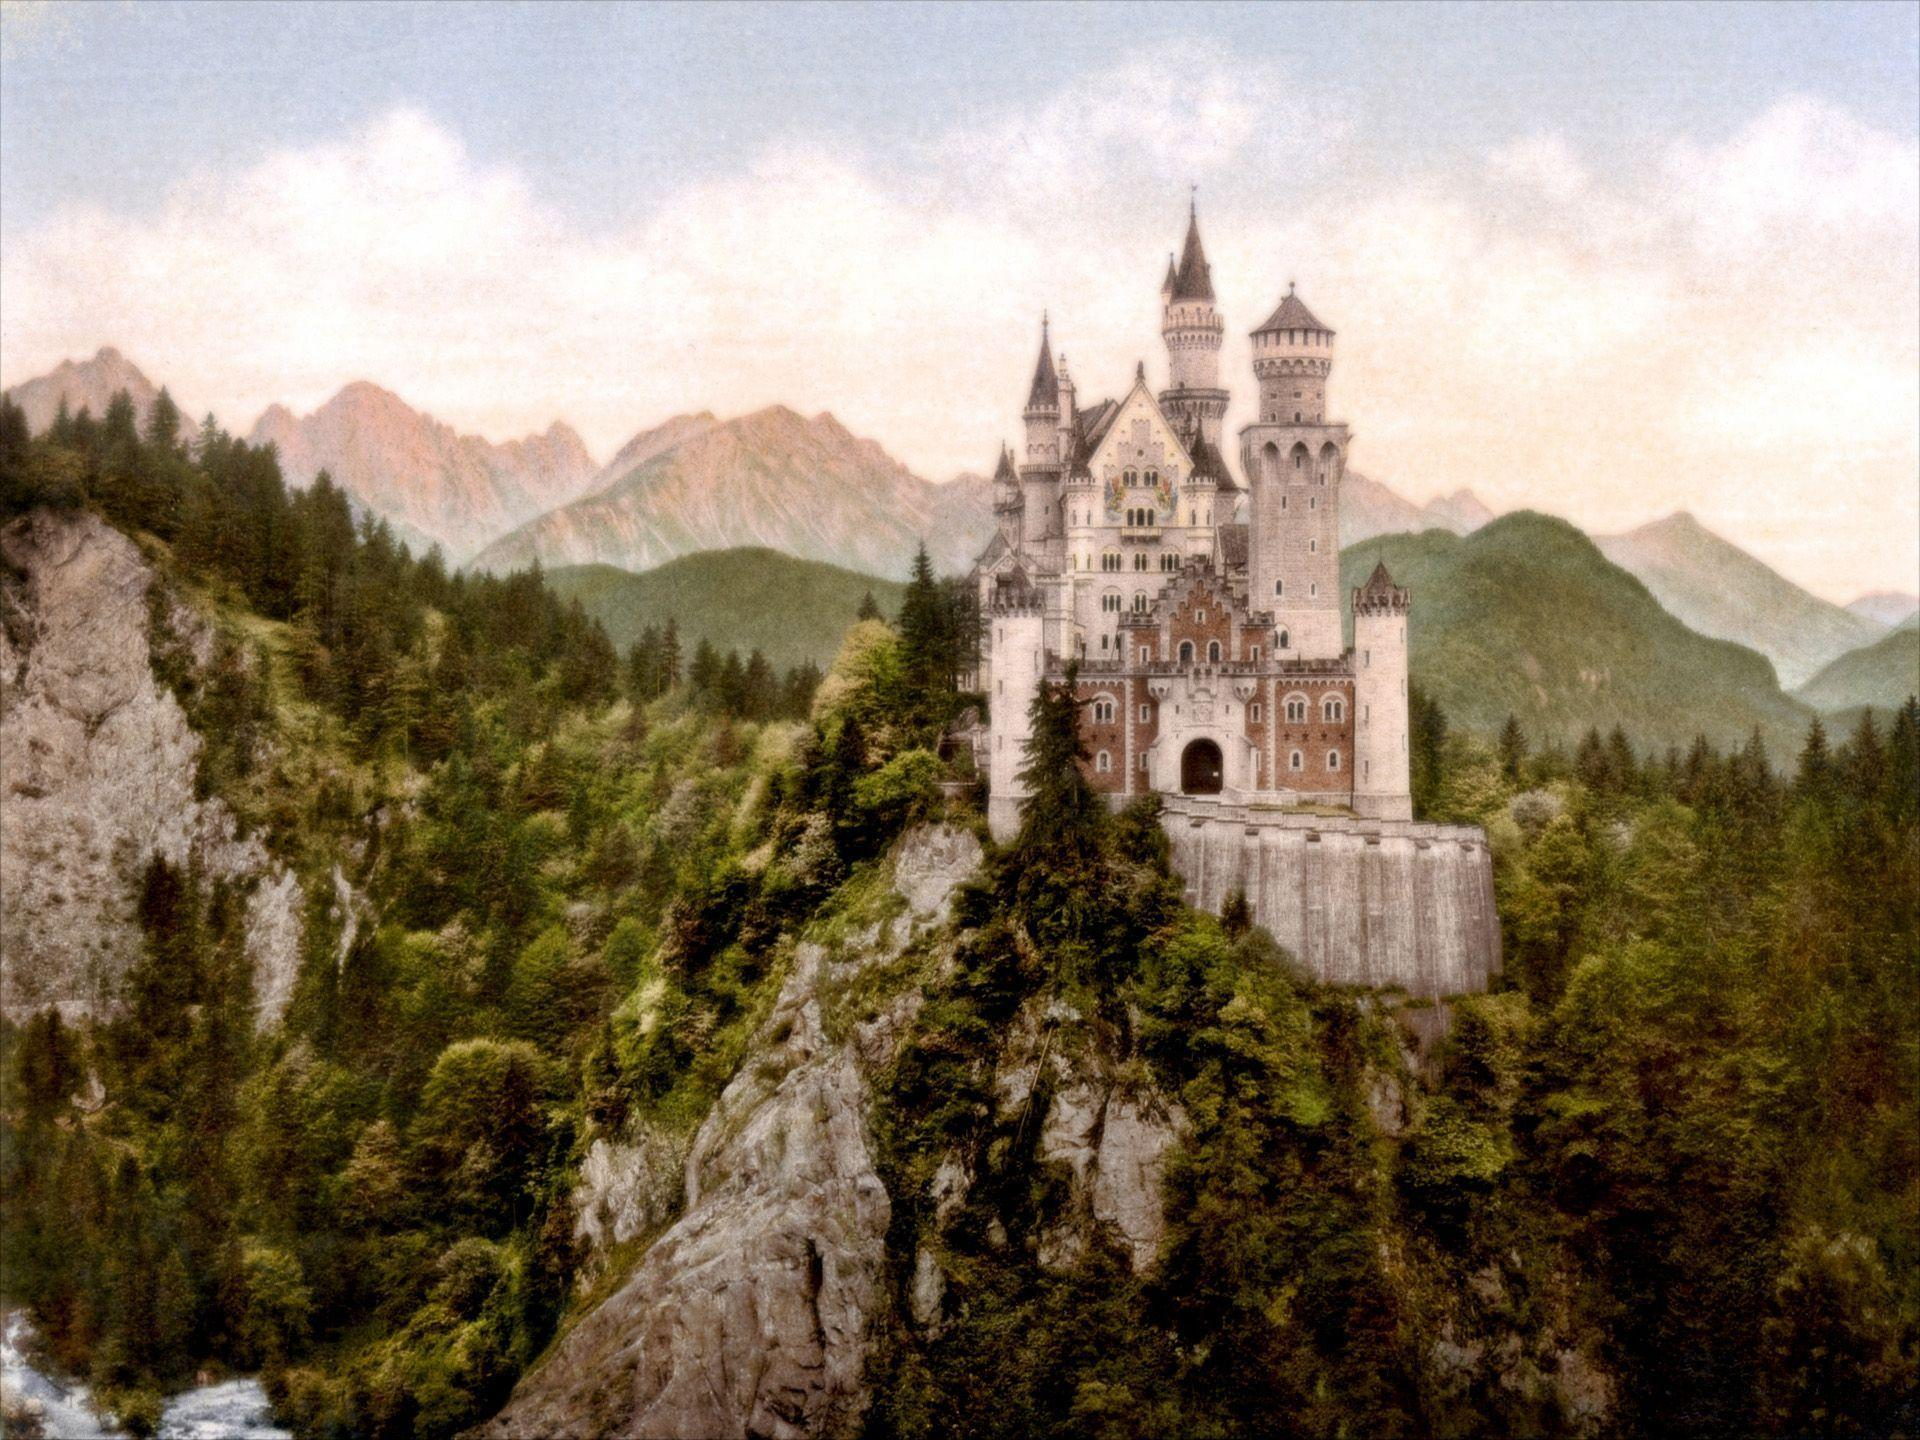 Neuschwanstein Castle TheWallpapers | Free Desktop Wallpapers for ...